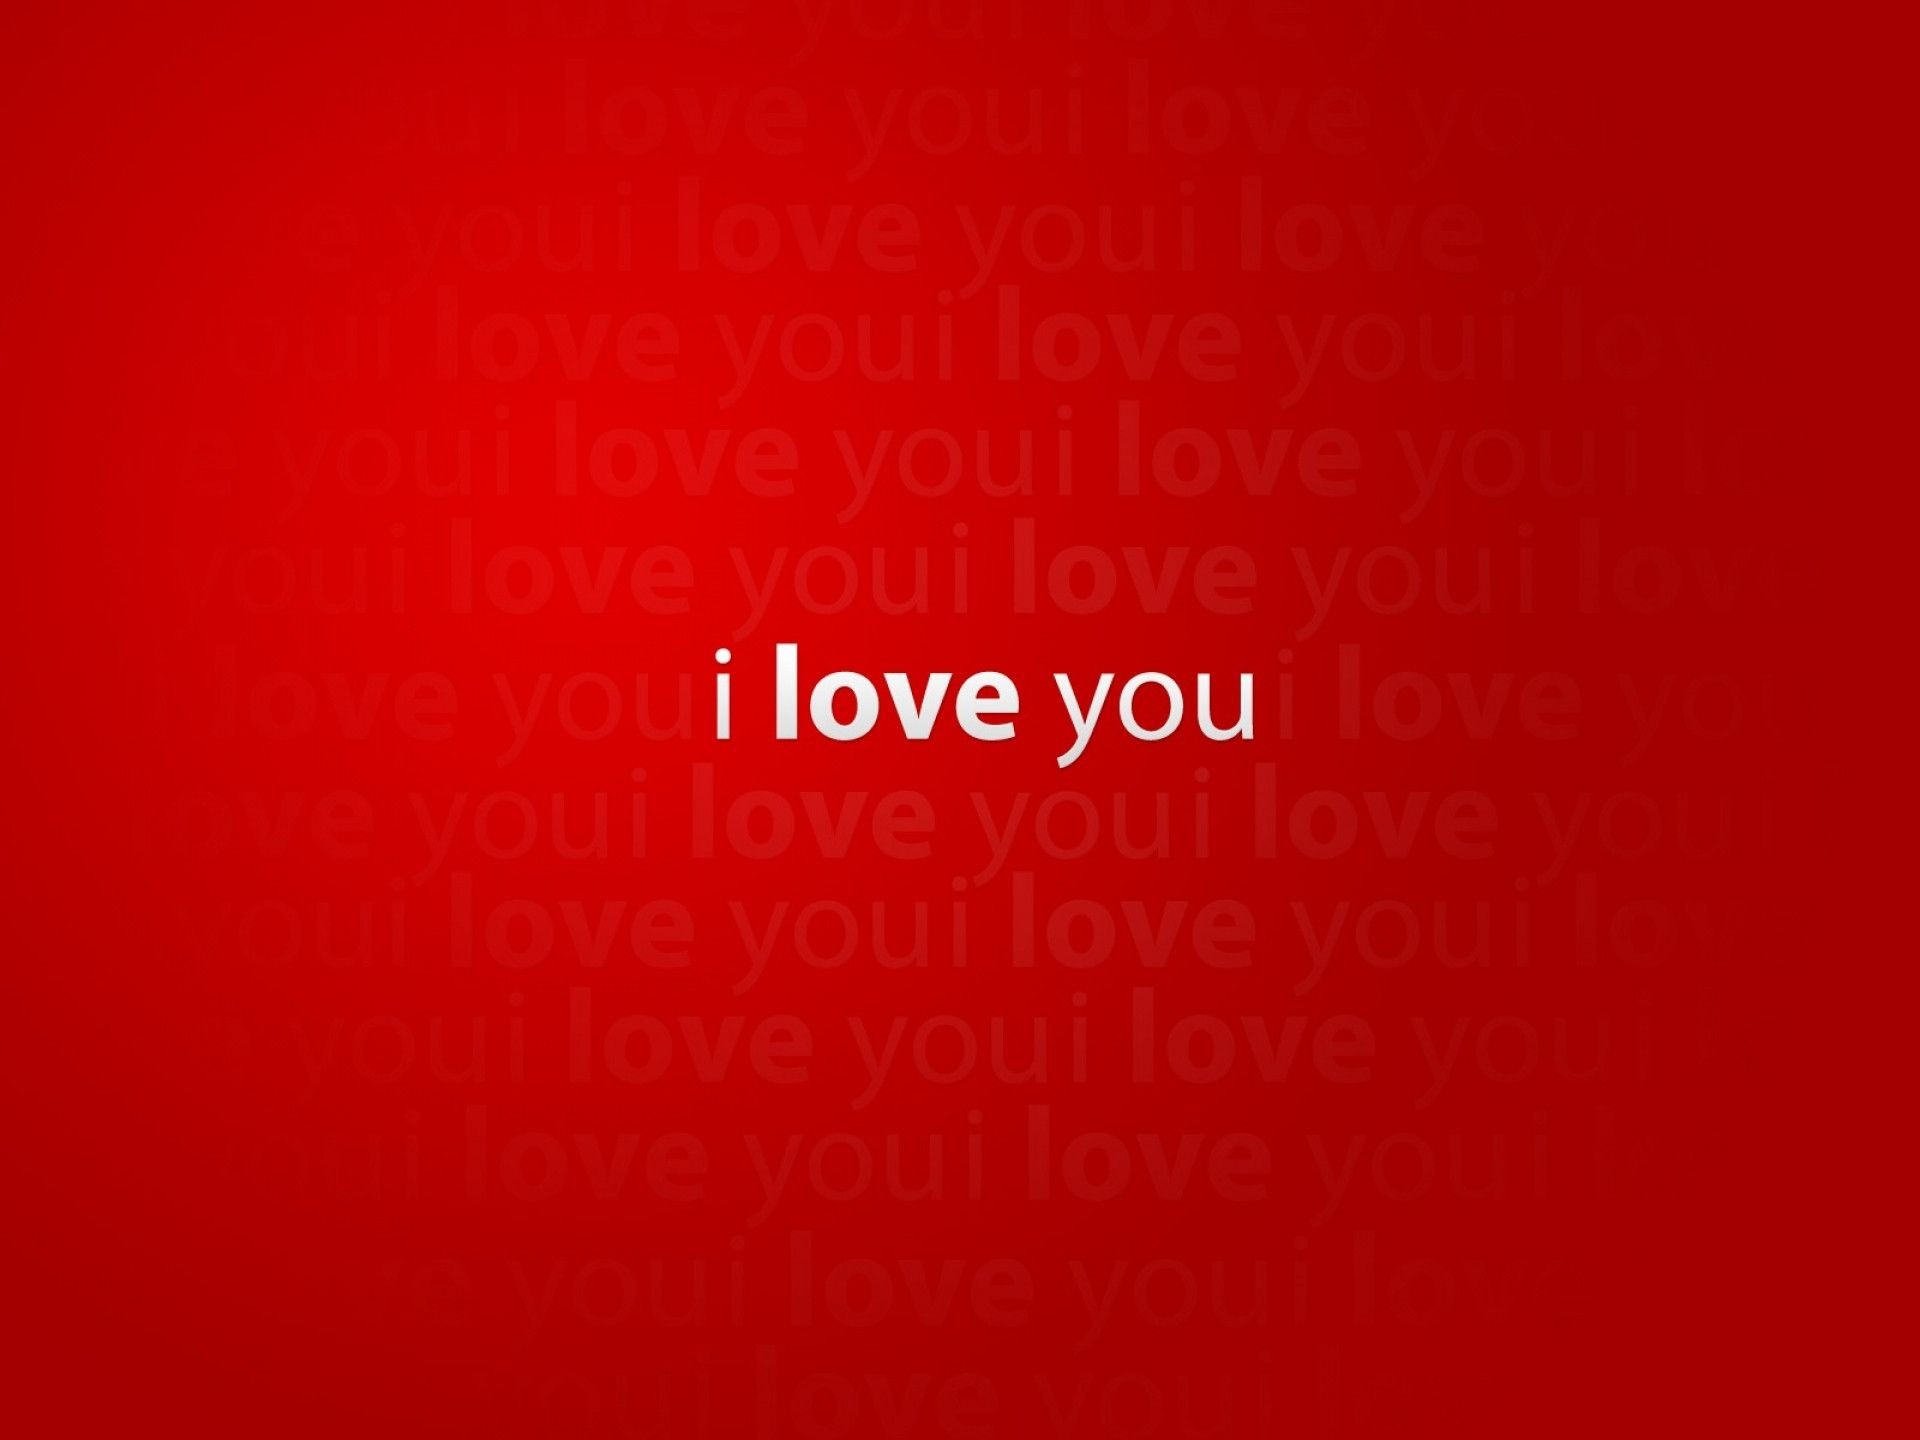 1920x1440 I Love You Wallpapers 14 I Love You Desktop Wallpaper  16319 Full  HD .